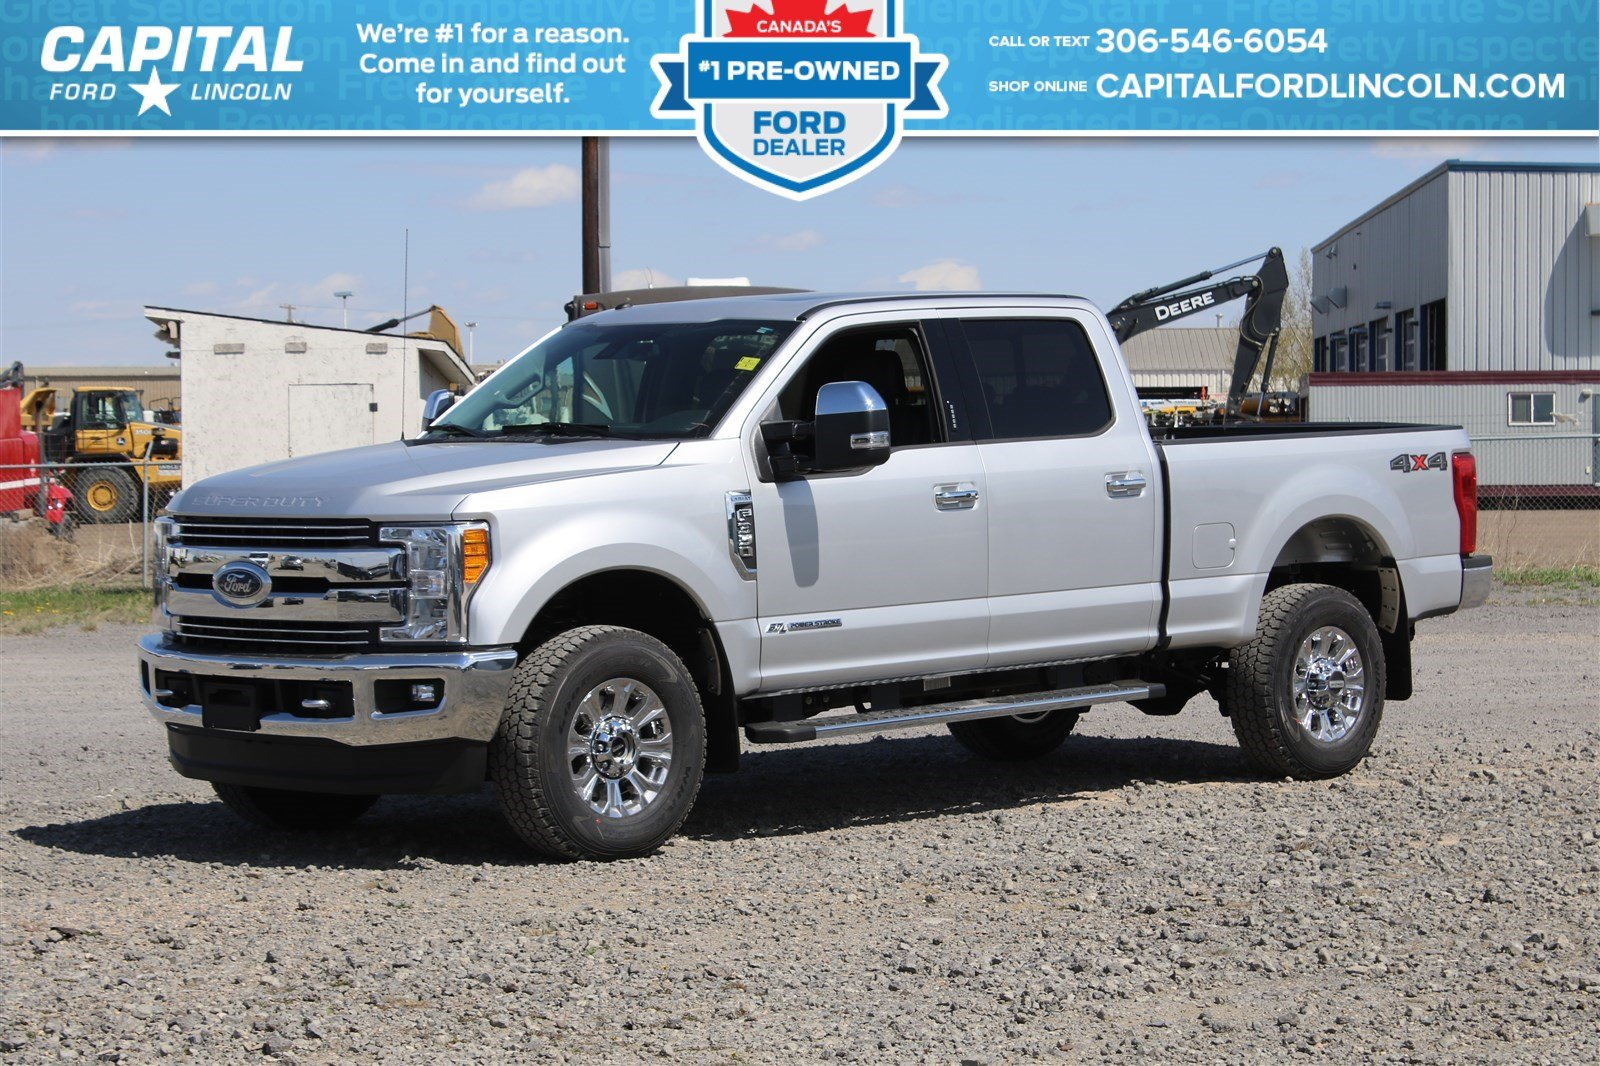 new 2017 ford f 350 diesel lariat supercrew supercrew pickup in regina r1046 capital ford lincoln. Black Bedroom Furniture Sets. Home Design Ideas